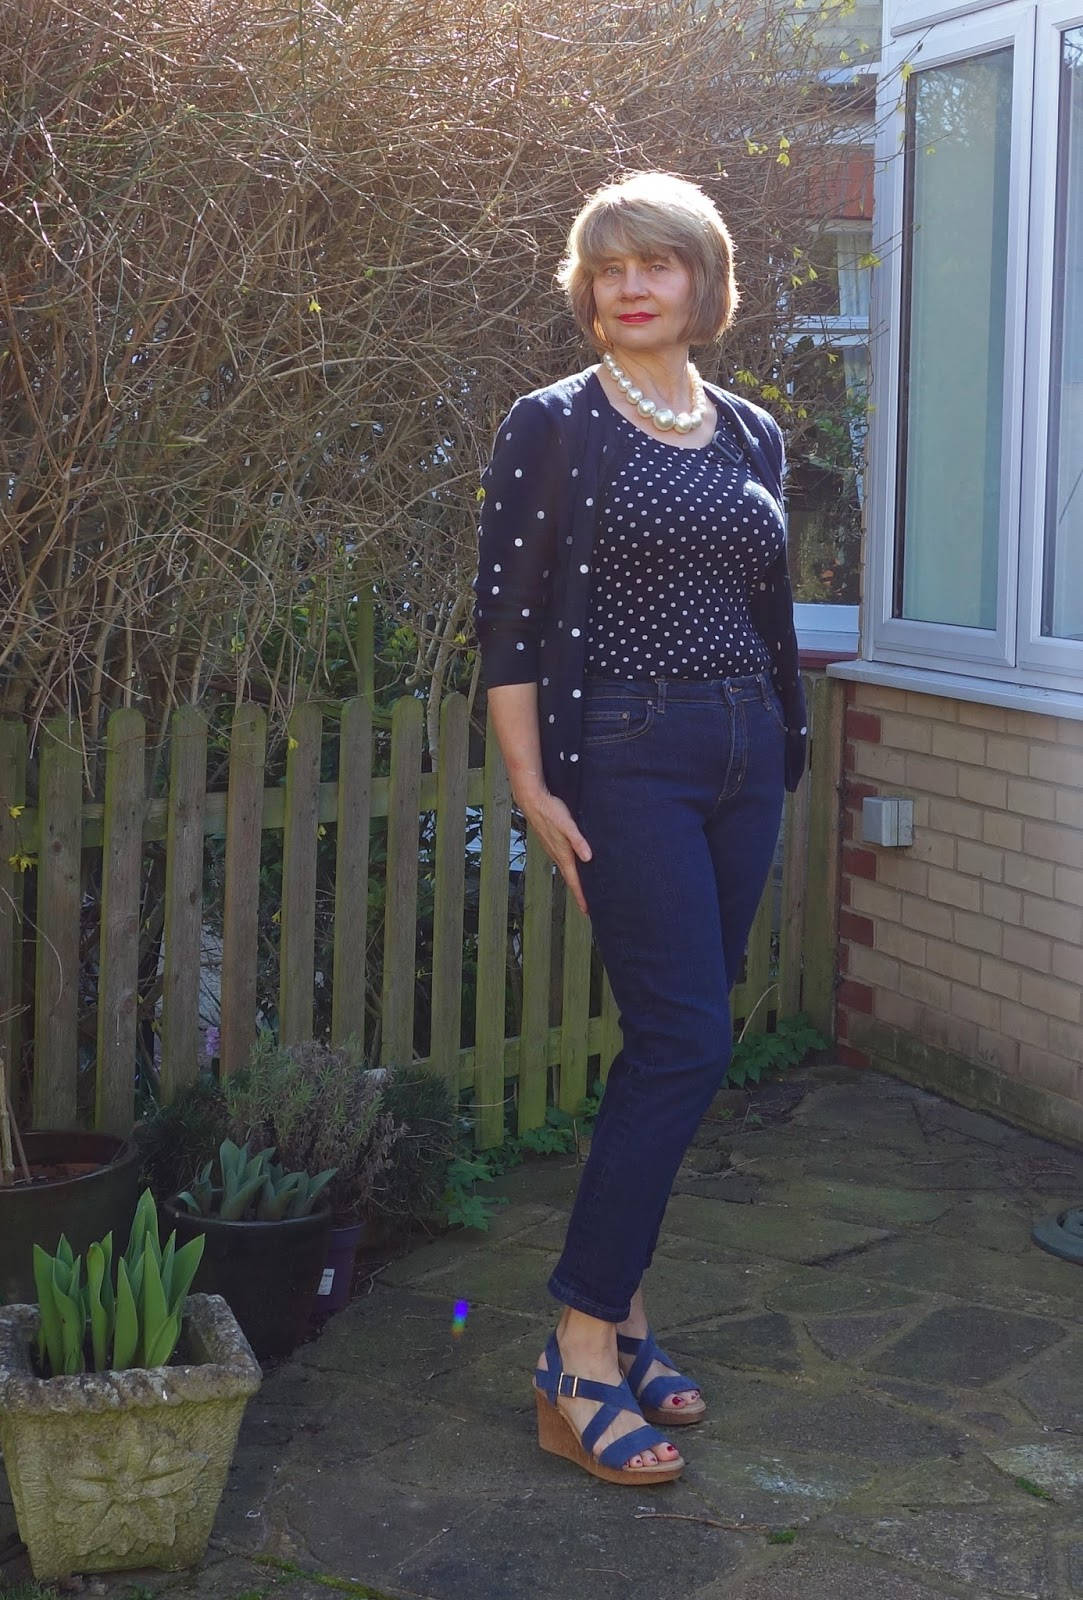 Image showing navy outfit with polka dots, jeans and pearls